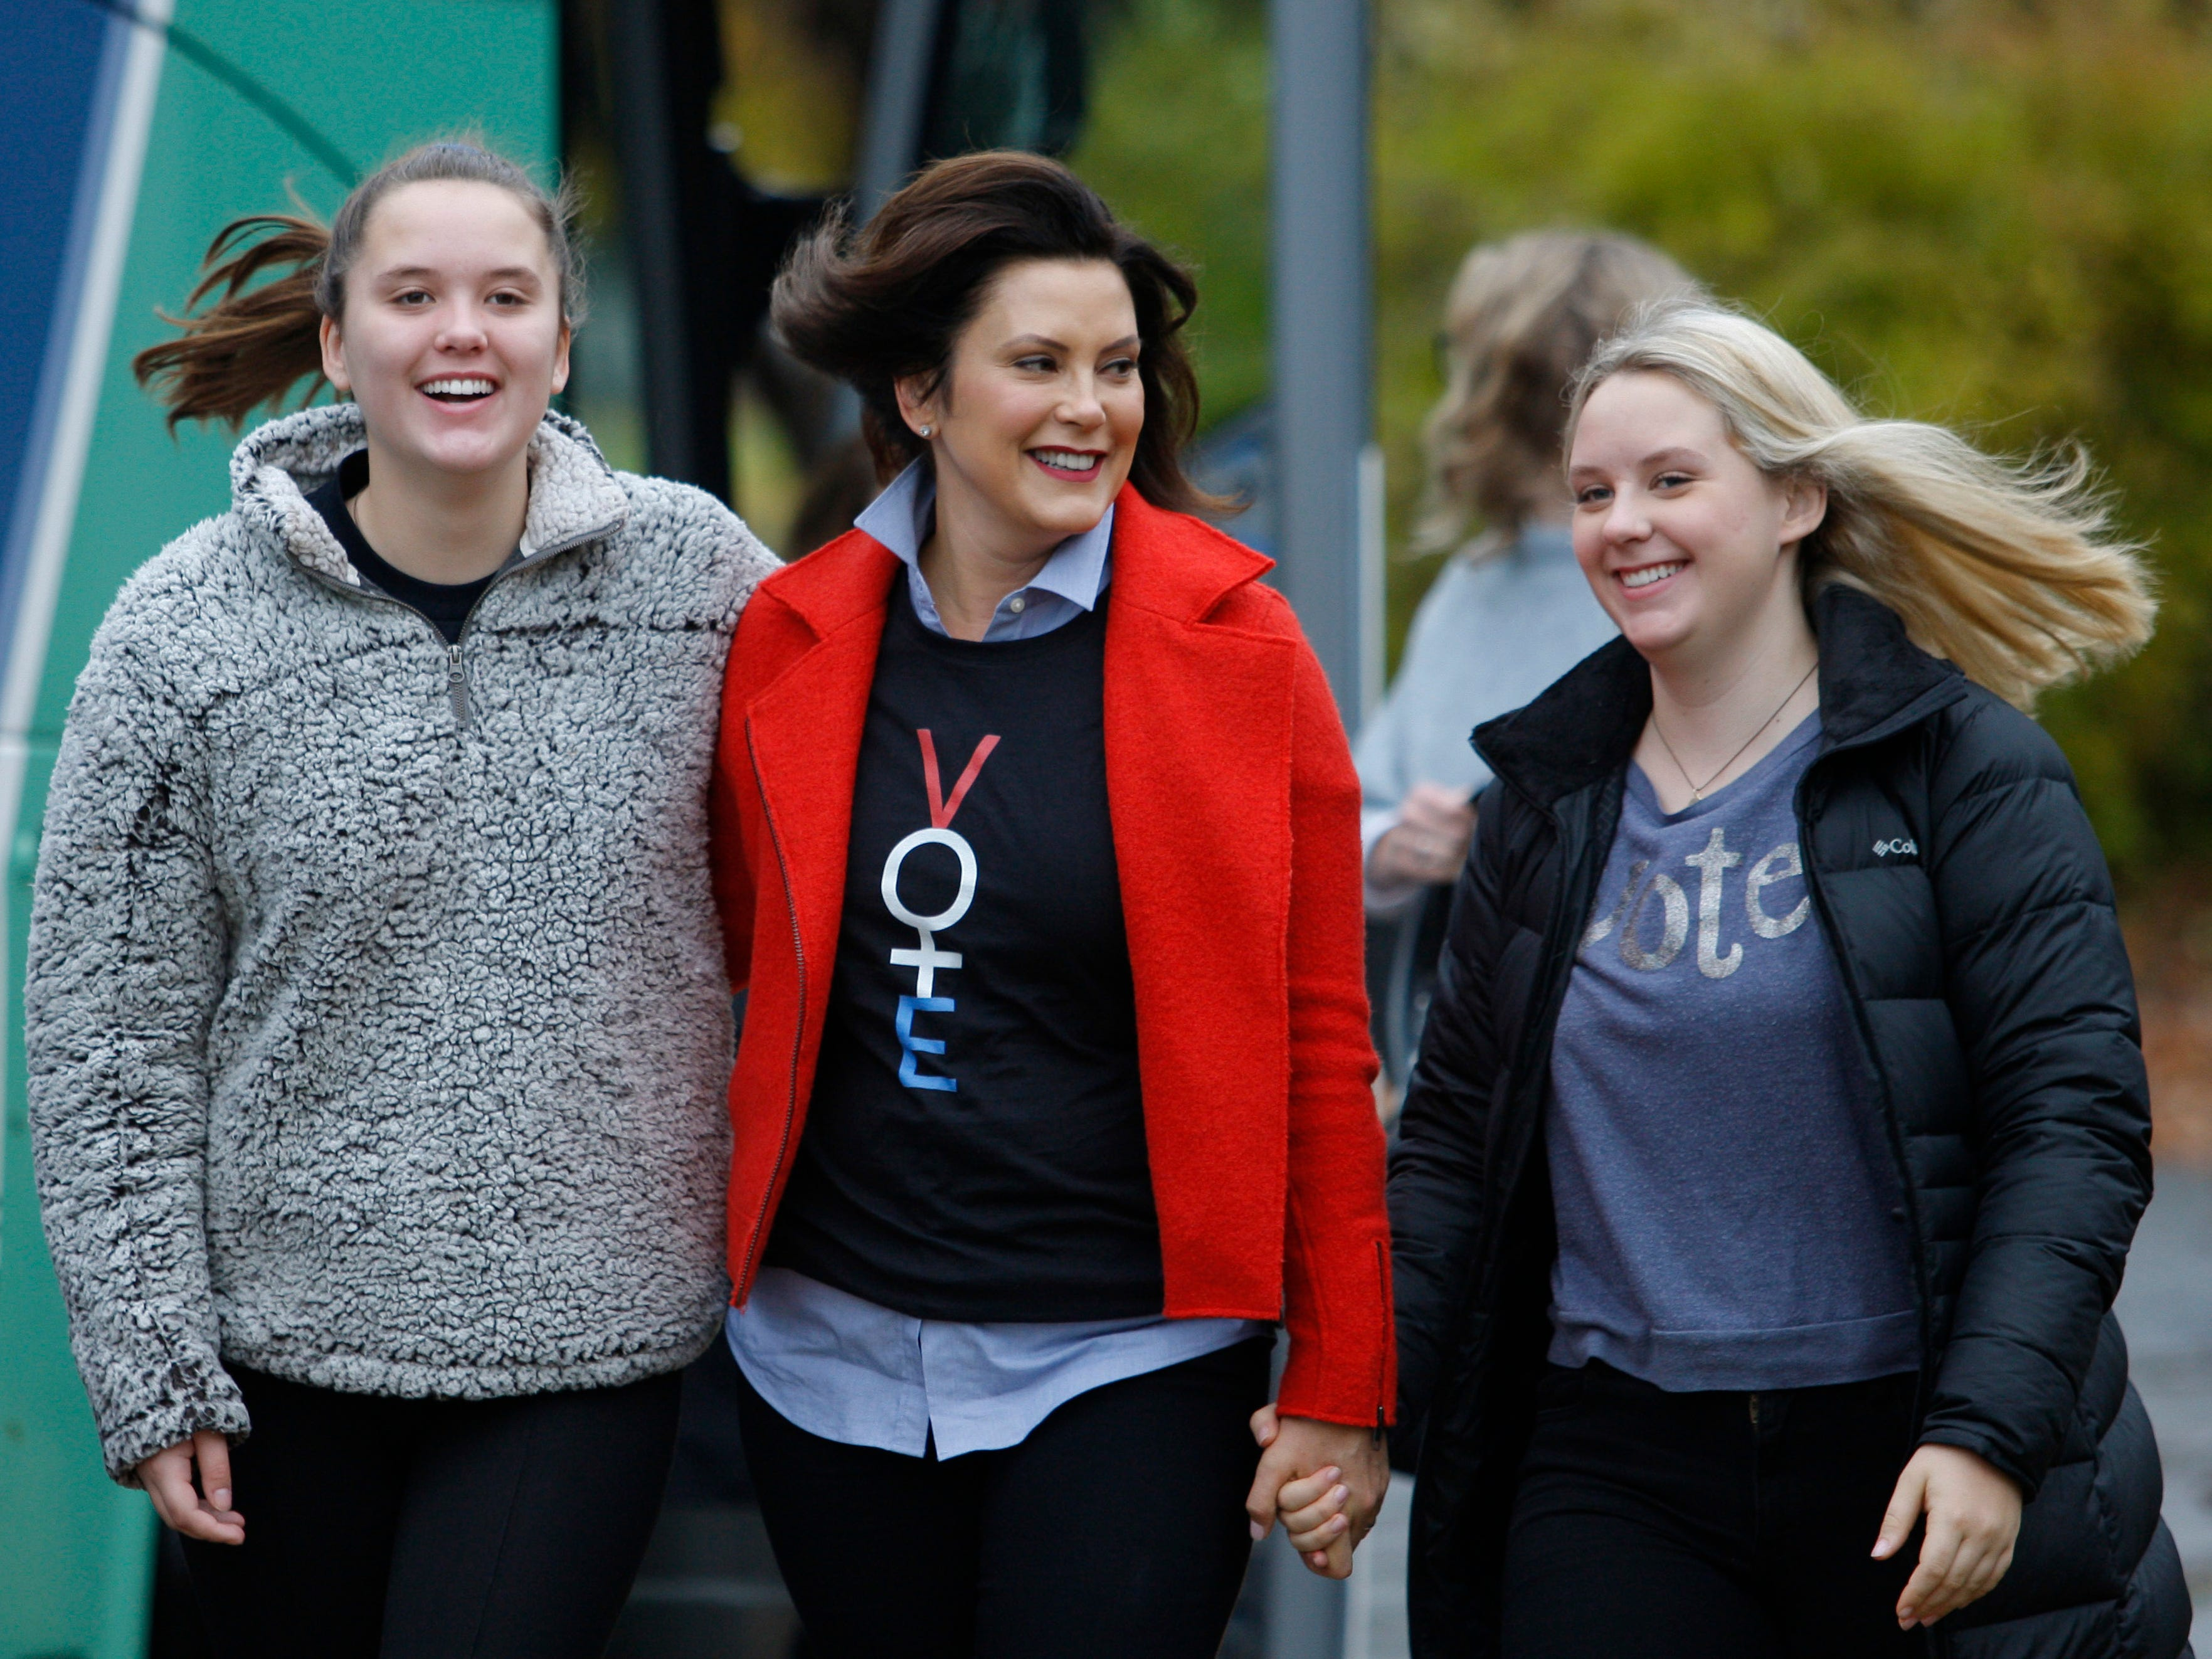 Michigan Democratic gubernatorial candidate Gretchen Whitmer, center, walks from her campaign bus to the polling place with daughters Sherry, left, and Sydney, Tuesday, Nov. 6, 2018, at St. Paul Lutheran Church in East Lansing.